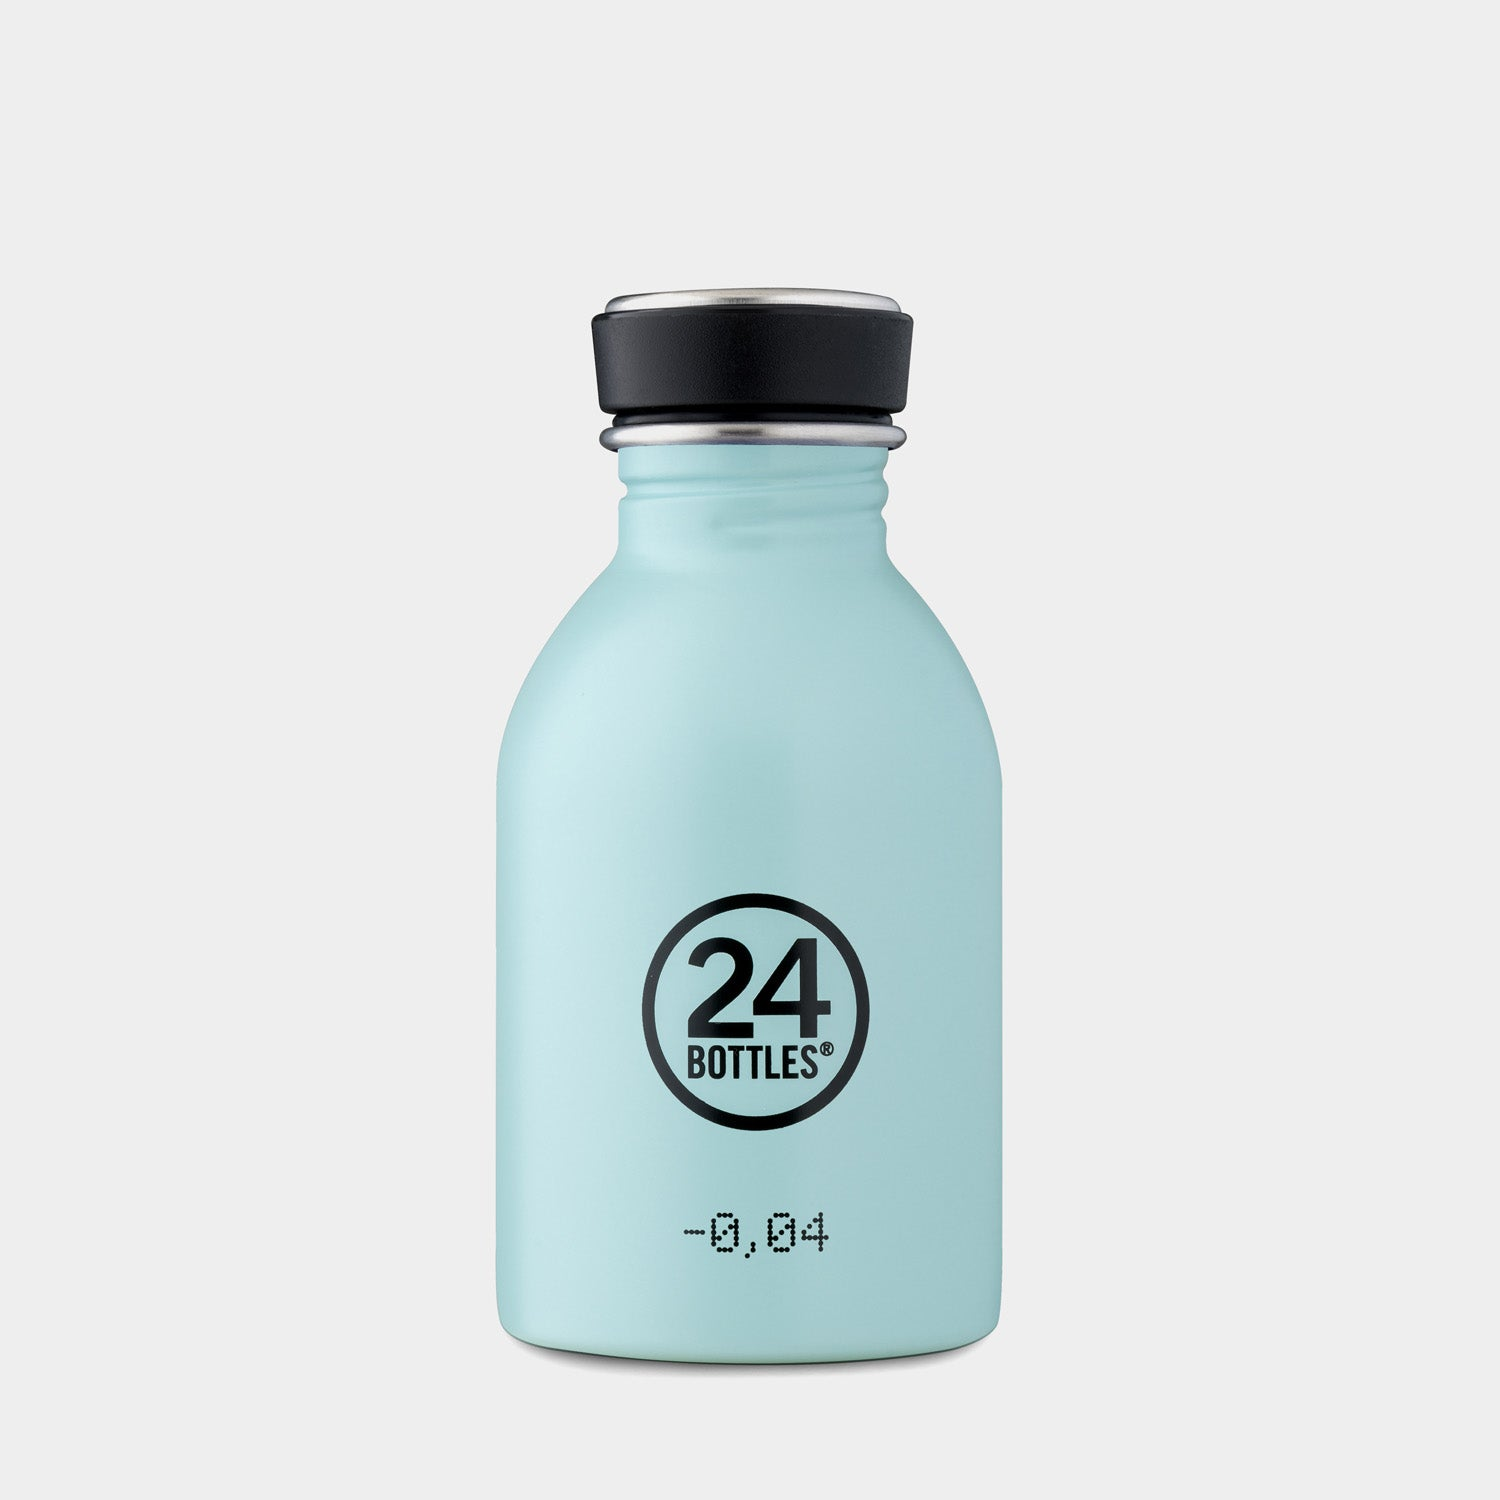 24Bottles Cloud Blue Urban Bottle - 250ml